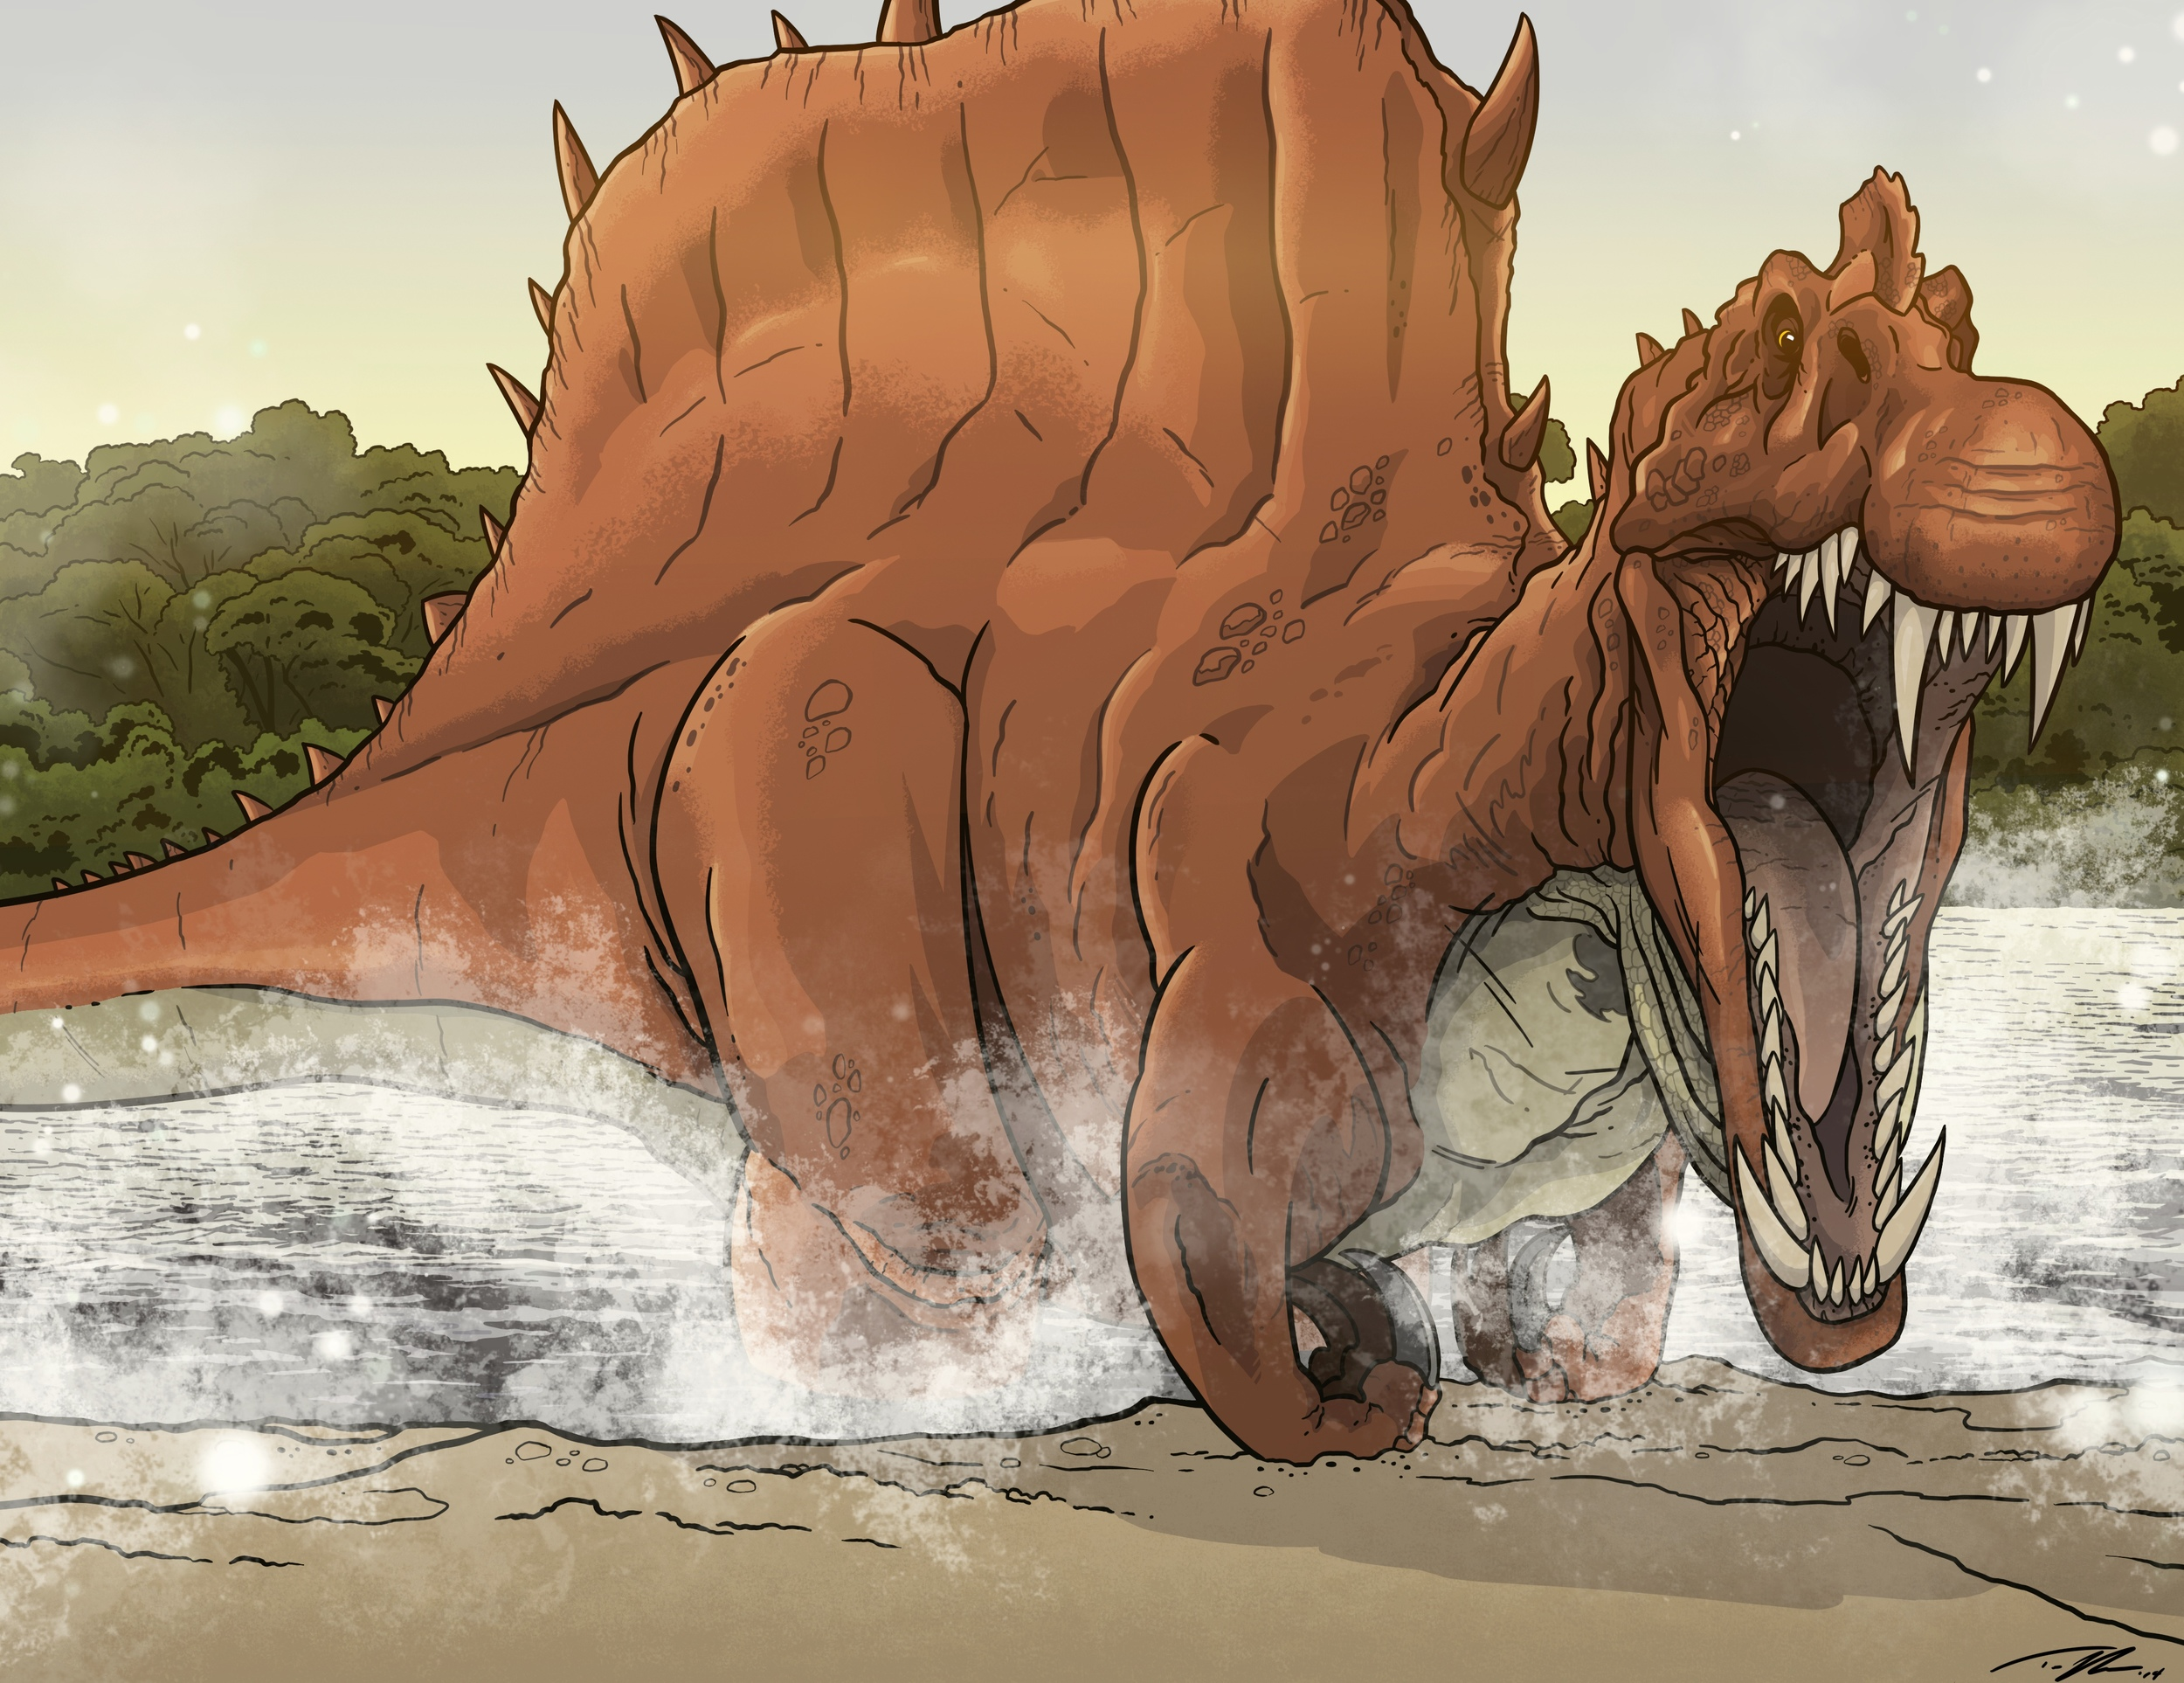 The trick to drawing an accurate spinosaurus amidst drastic changes to the skeletal reconstruction? Keep his legs in the water!